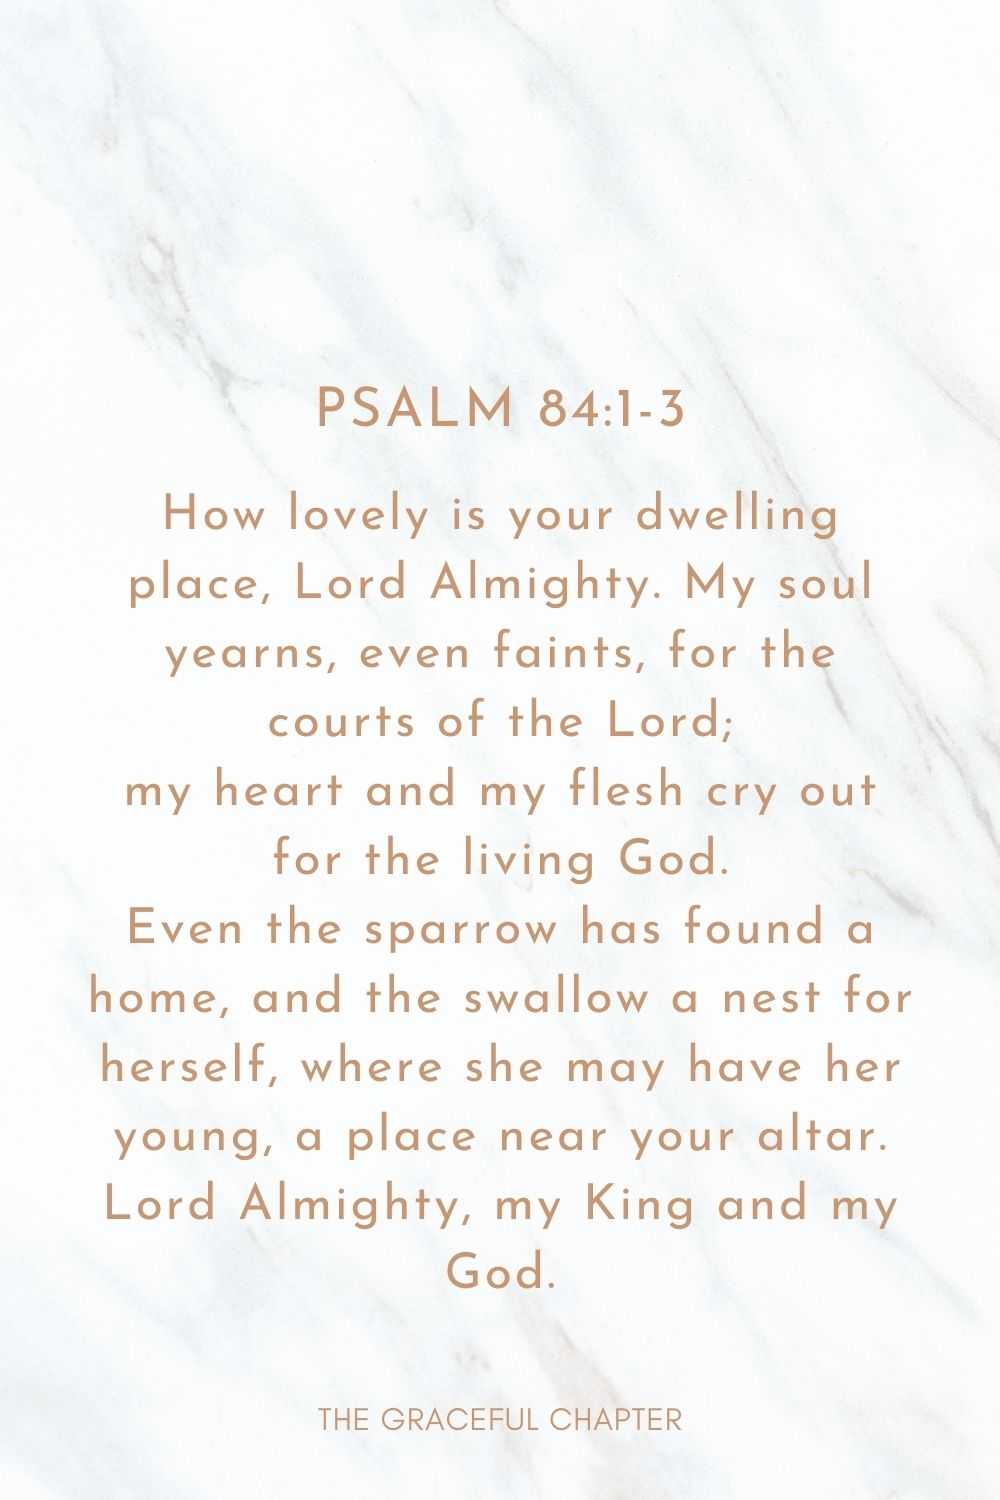 How lovely is your dwelling place, Lord Almighty. My soul yearns, even faints, for the courts of the Lord; my heart and my flesh cry out for the living God. Even the sparrow has found a home, and the swallow a nest for herself, where she may have her young, a place near your altar. Lord Almighty, my King and my God. Psalm 84:1-3